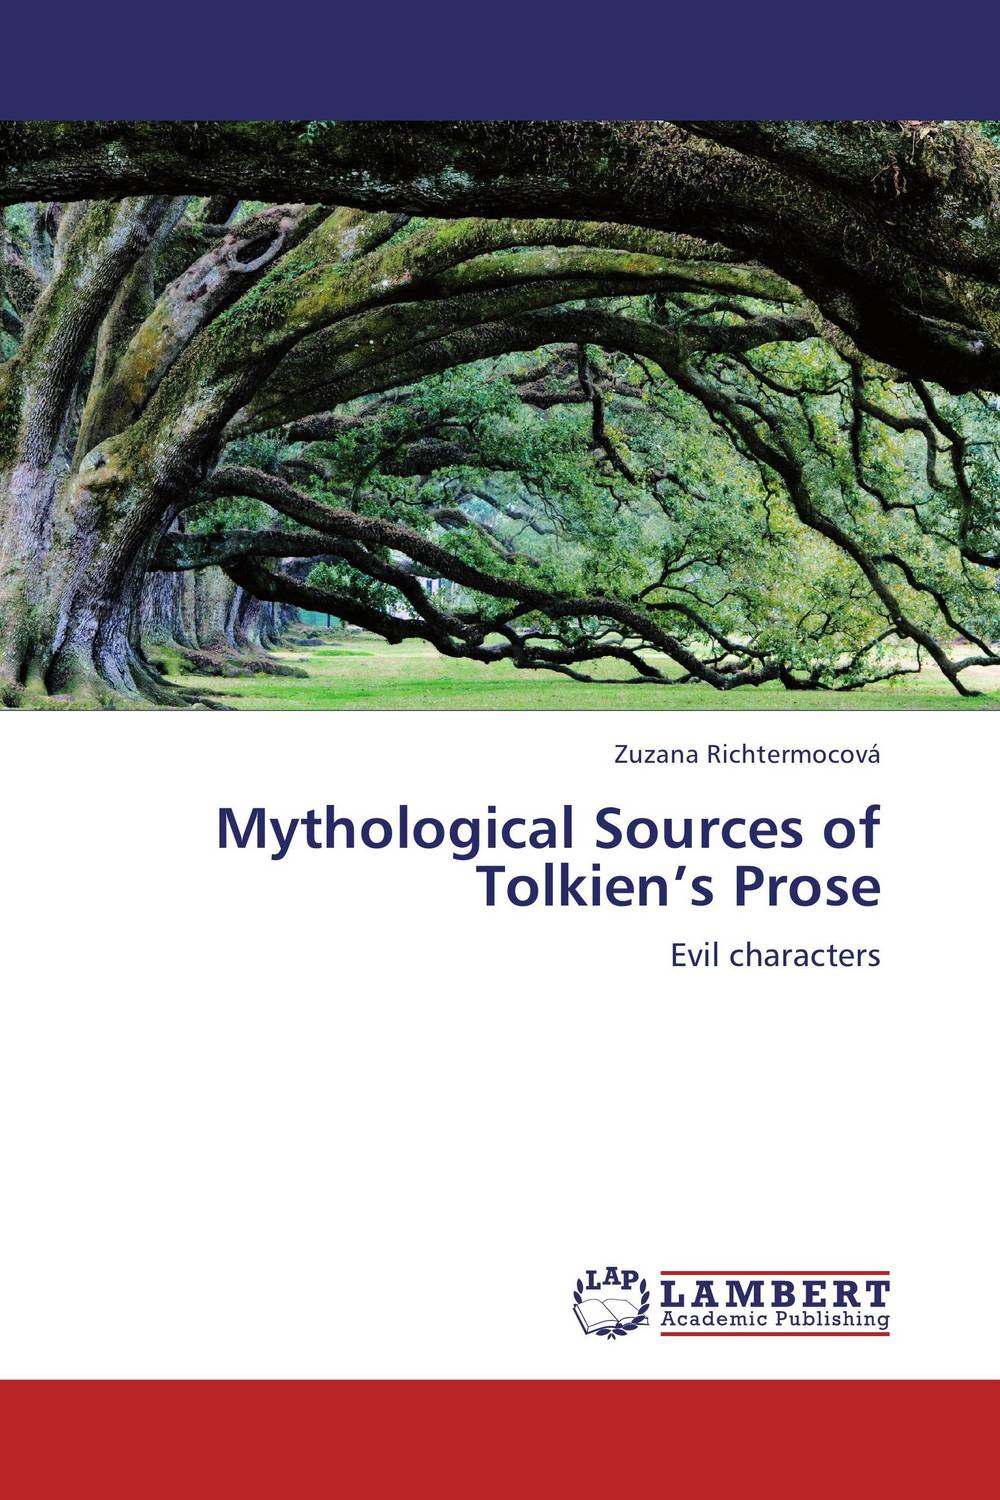 Mythological Sources of Tolkien's Prose scientific and mythological ways of knowing in anthropology